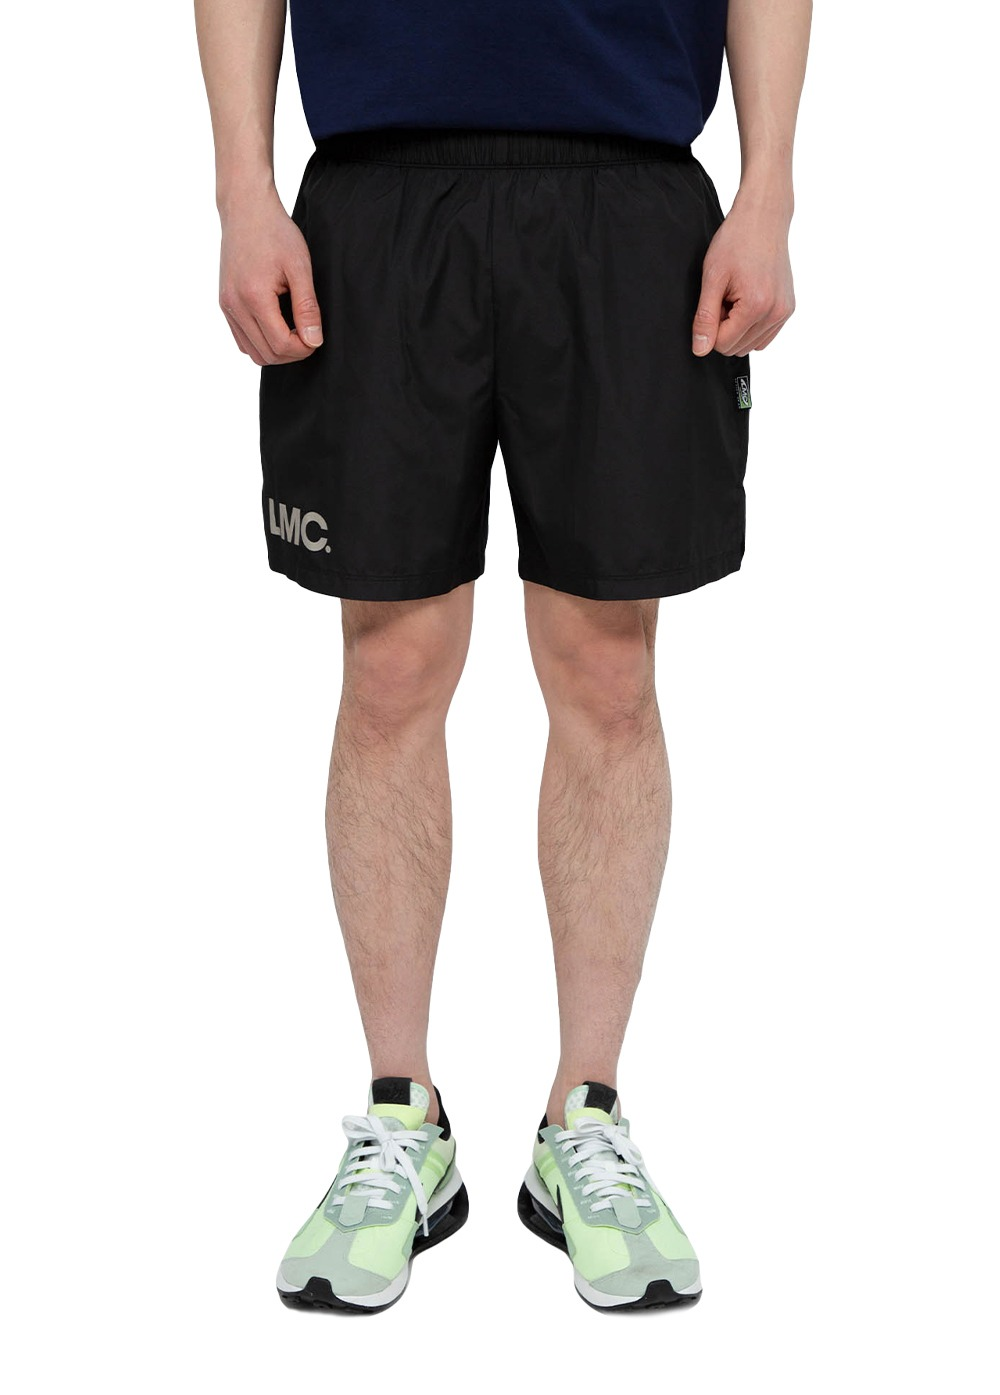 LMC ACTIVE GEAR SPORTS SHORTS black